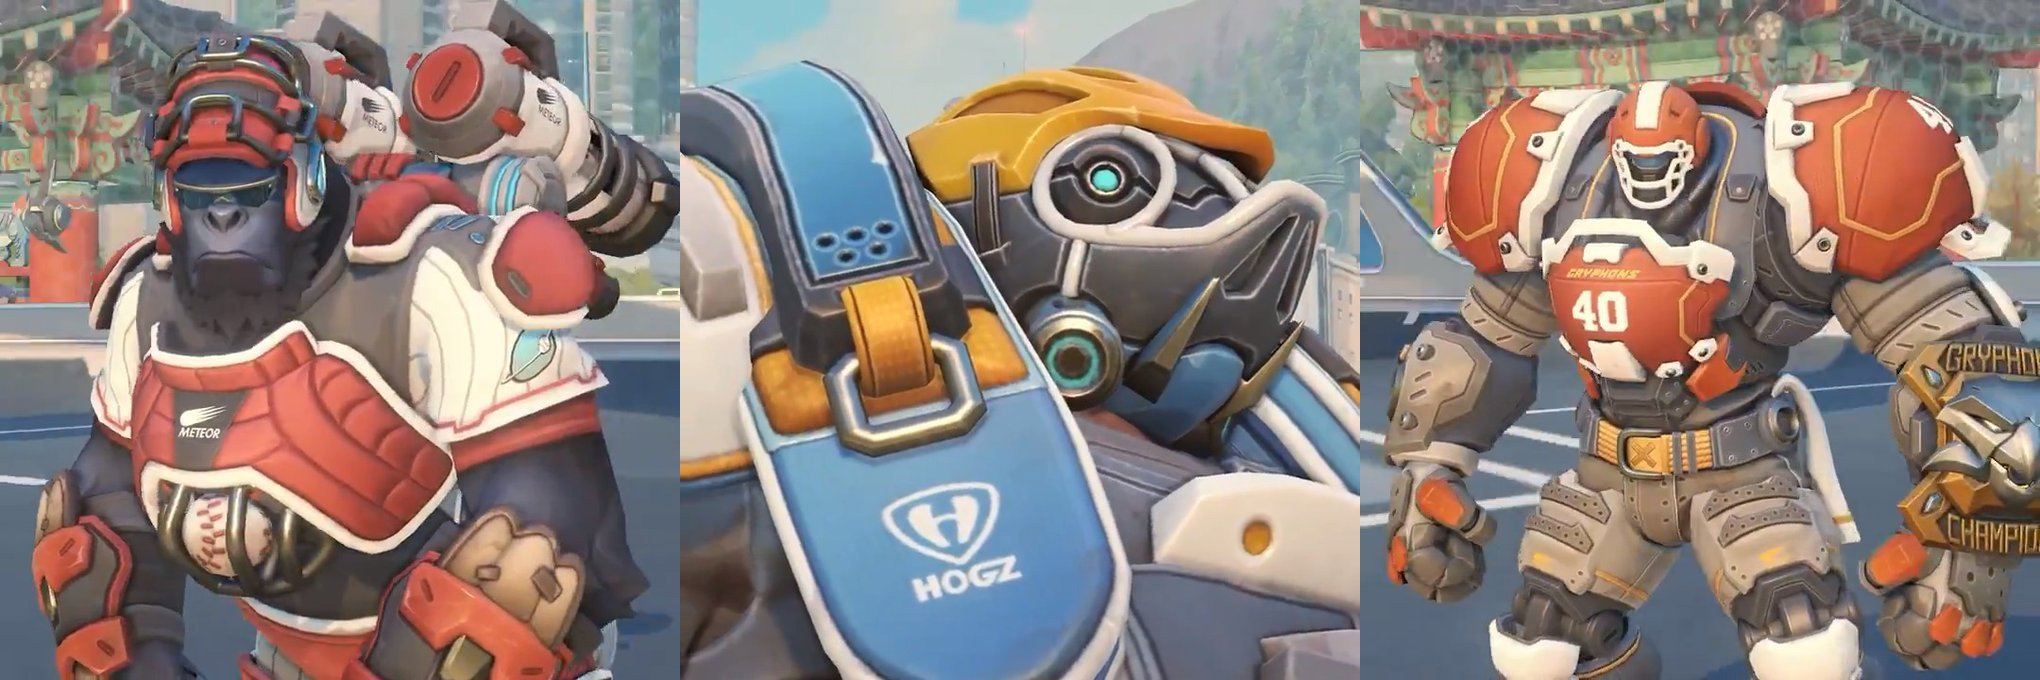 Overwatch heroes are sporting new looks for Summer Games 2018 screenshot